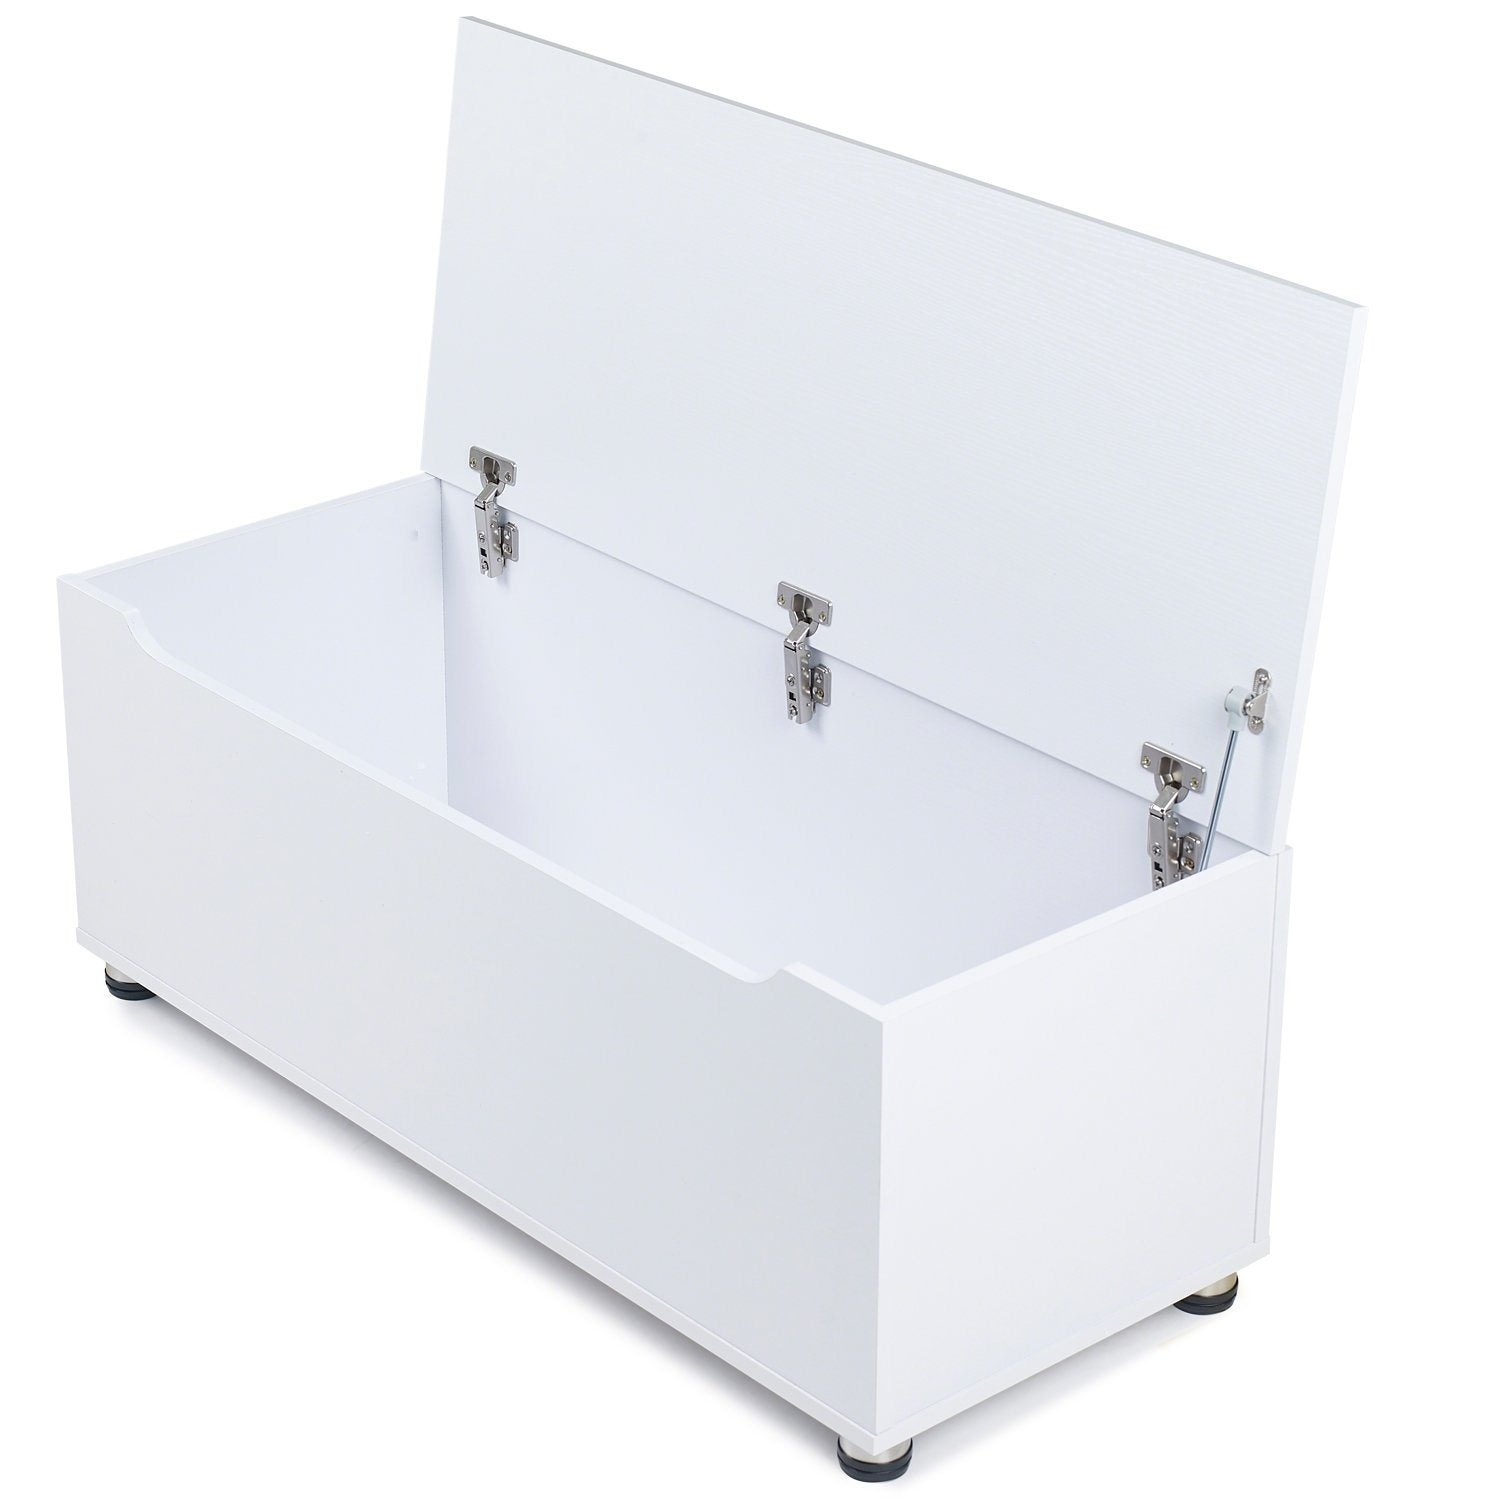 White Wooden Storage Chest - Blanket Box - Toy Chest - Laura James